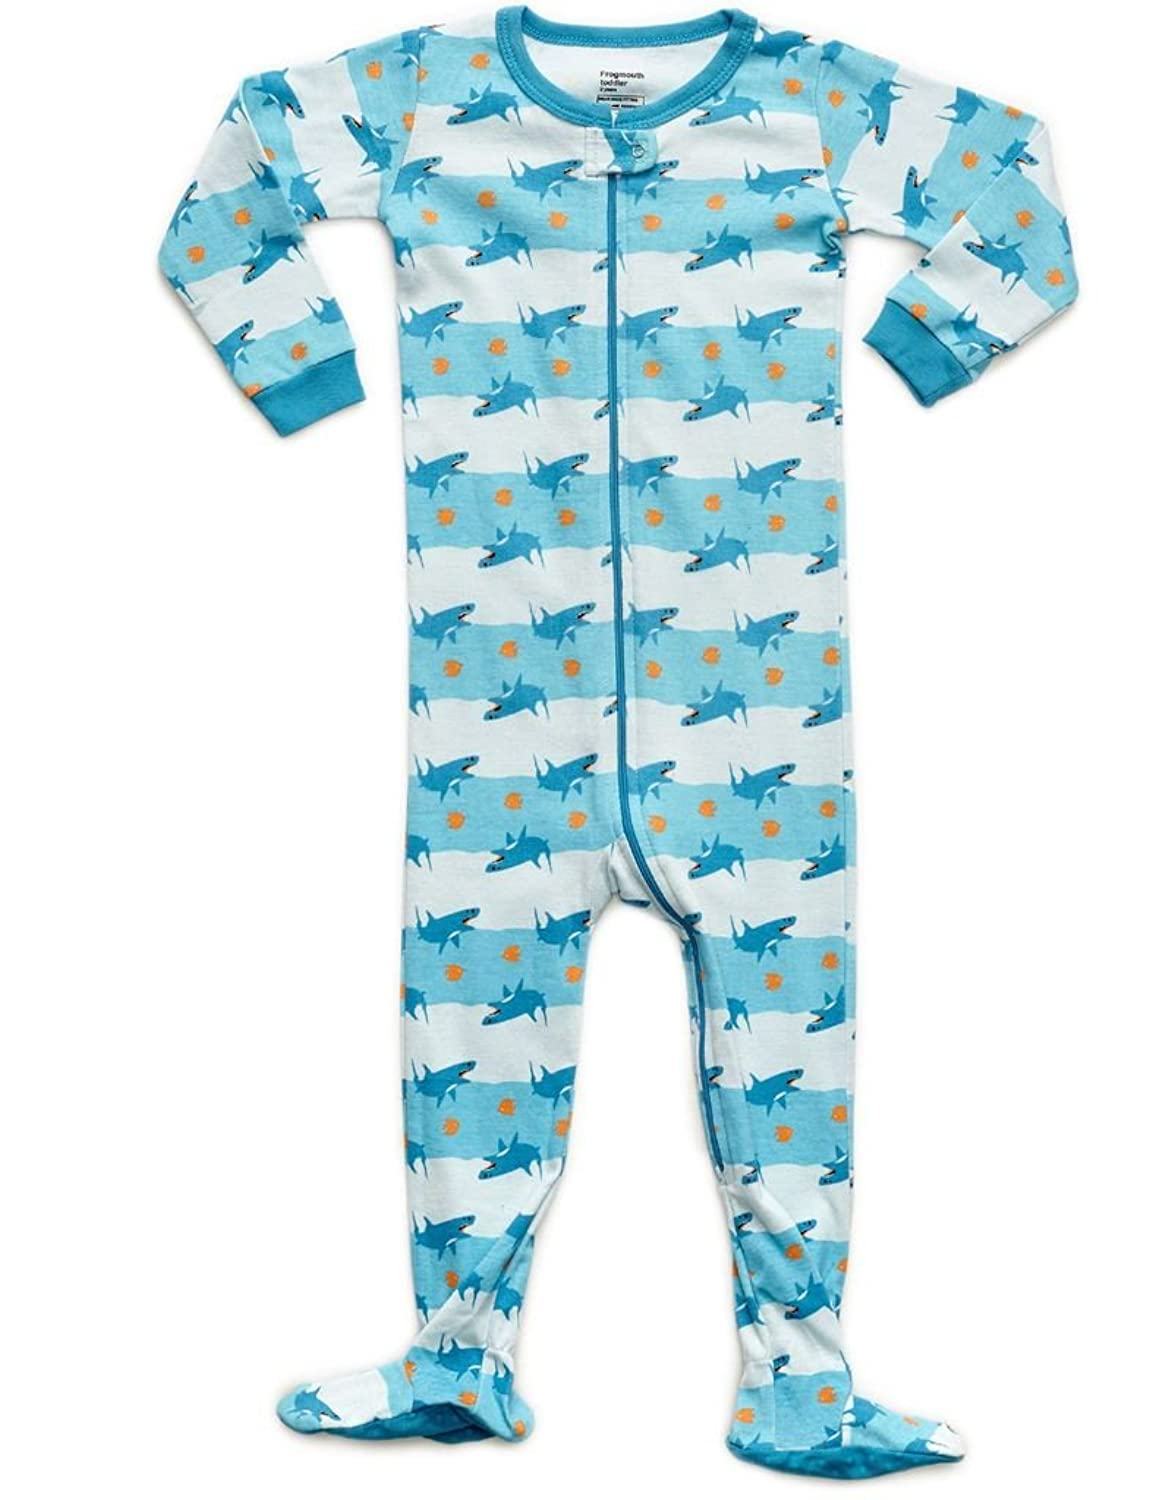 com frogmouth boys footed sleeper shark fish pajama  com frogmouth boys footed sleeper shark fish pajama 100% cotton 6 months 5 years clothing